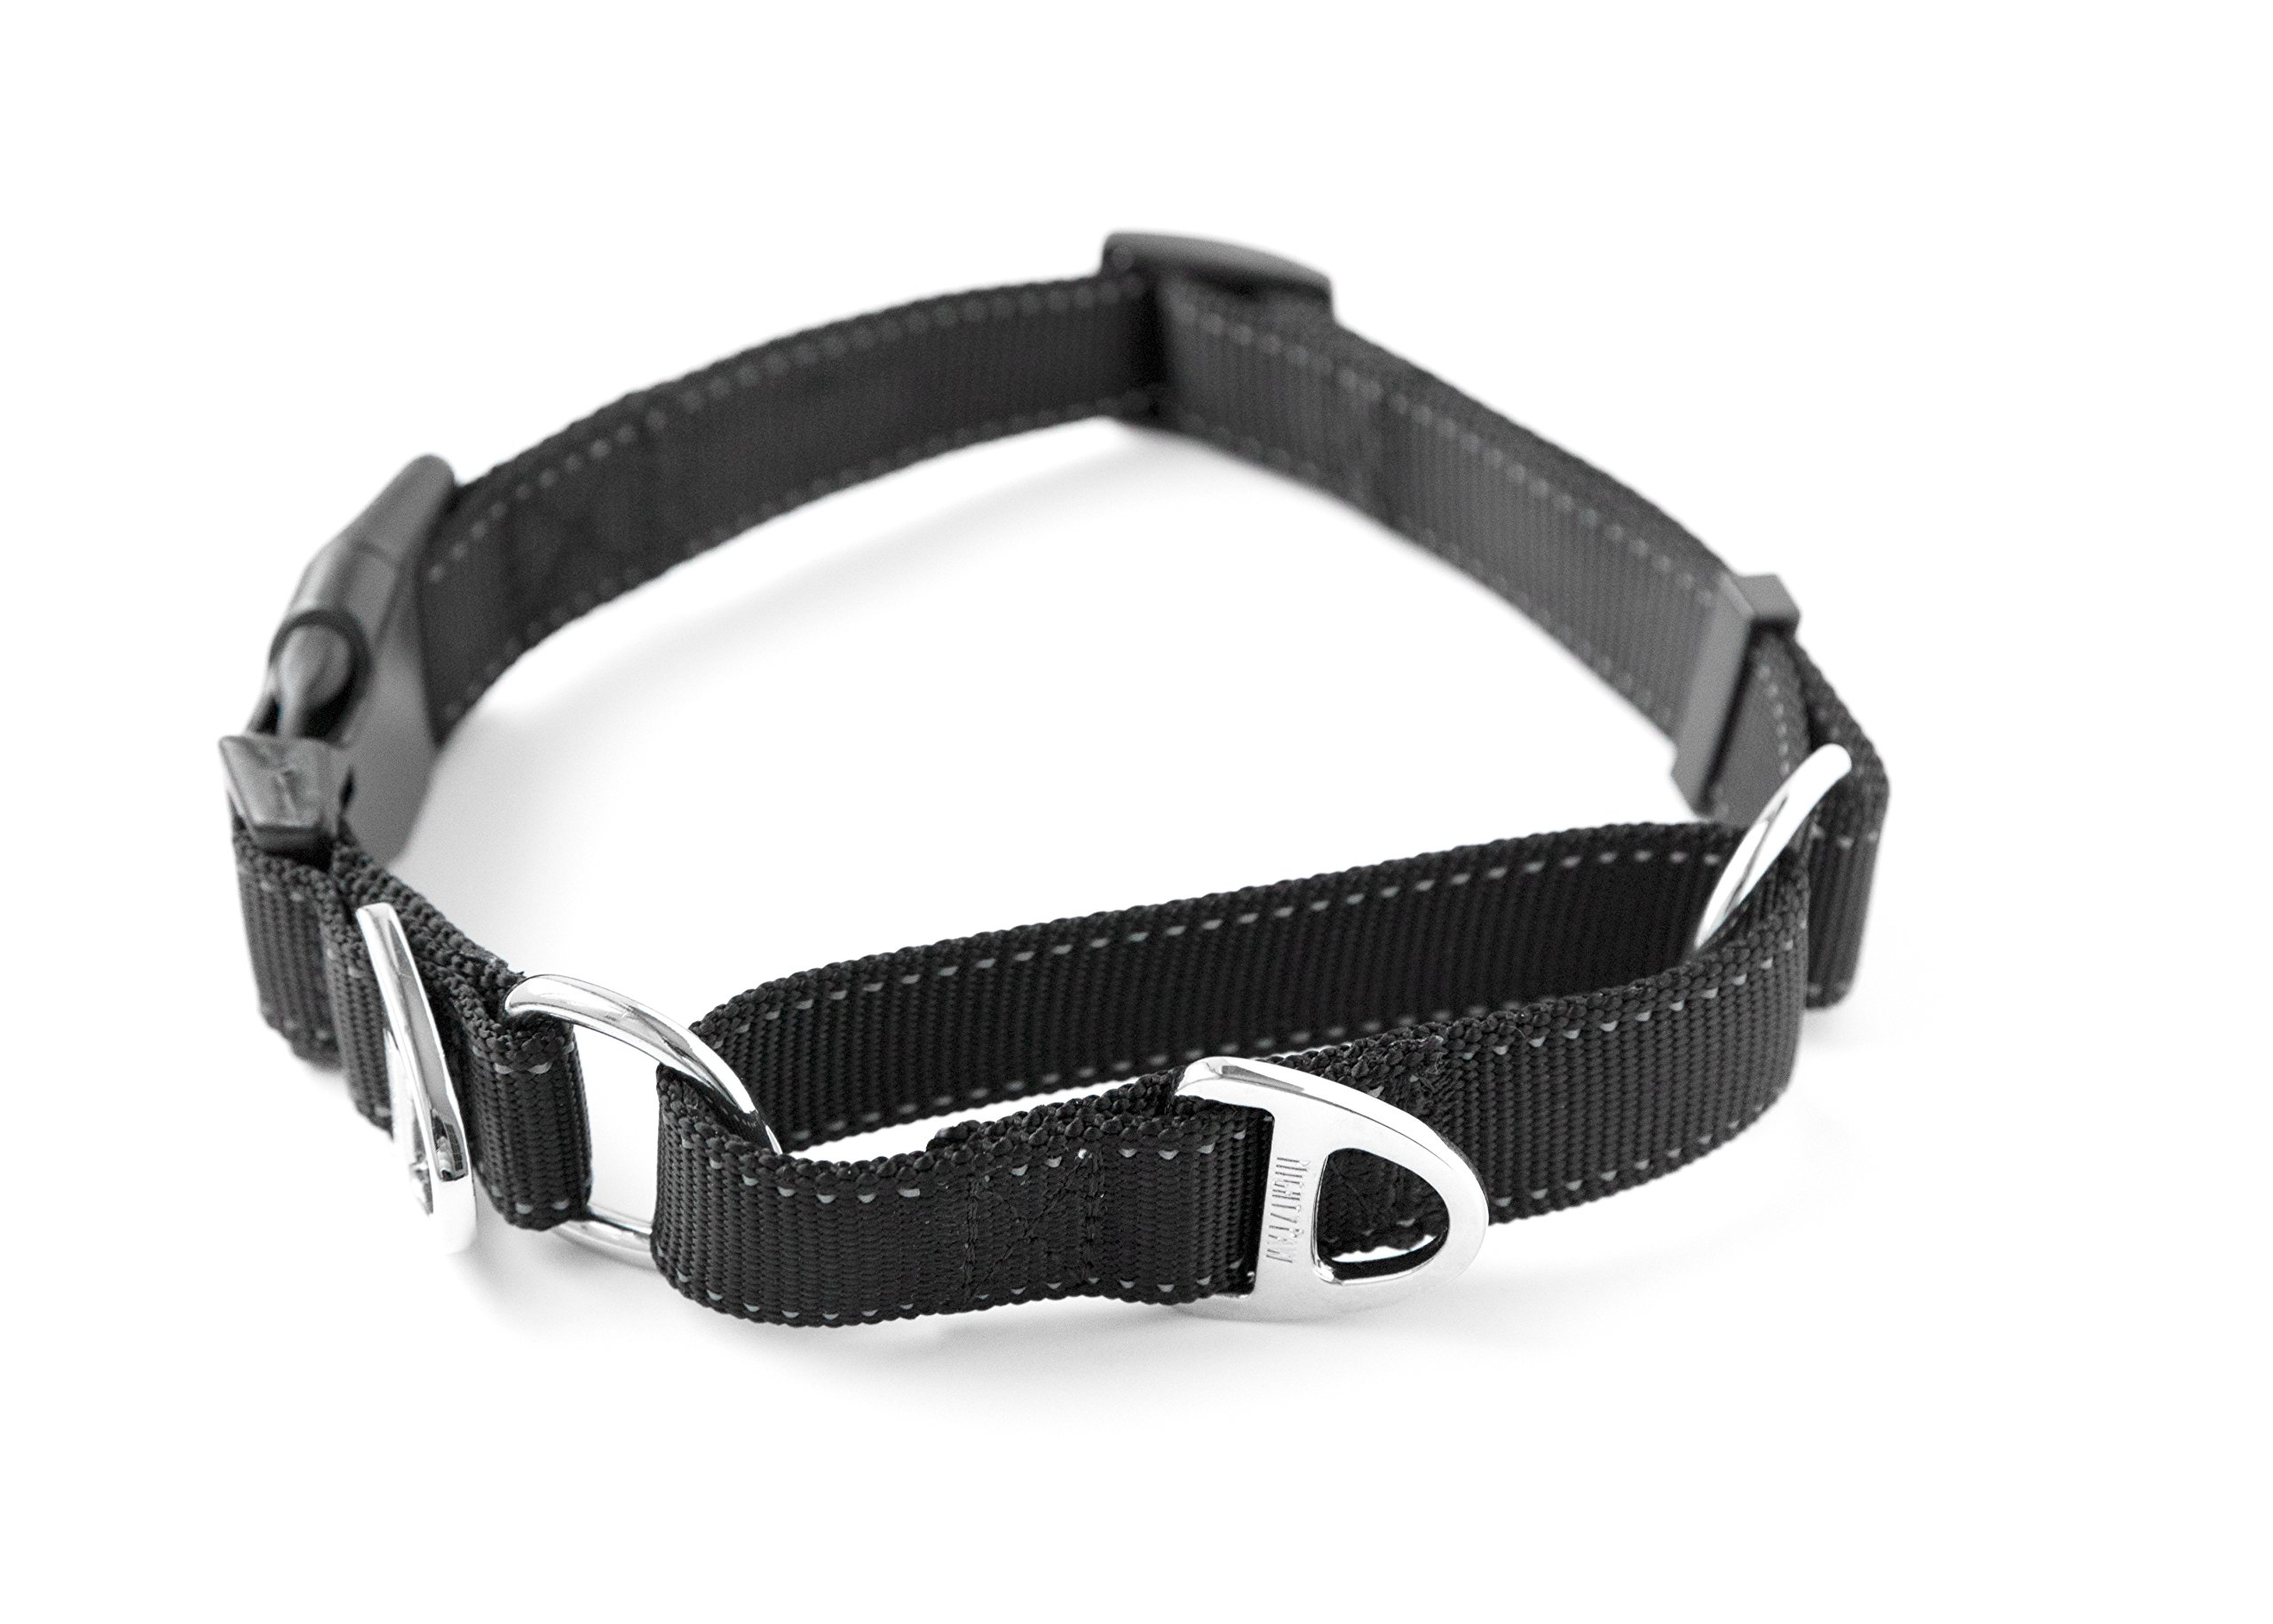 Mighty Paw Nylon Training Collar, Nylon Martingale Collar, Premium Quality Limited-Cinch Collar with Reflective Stitching